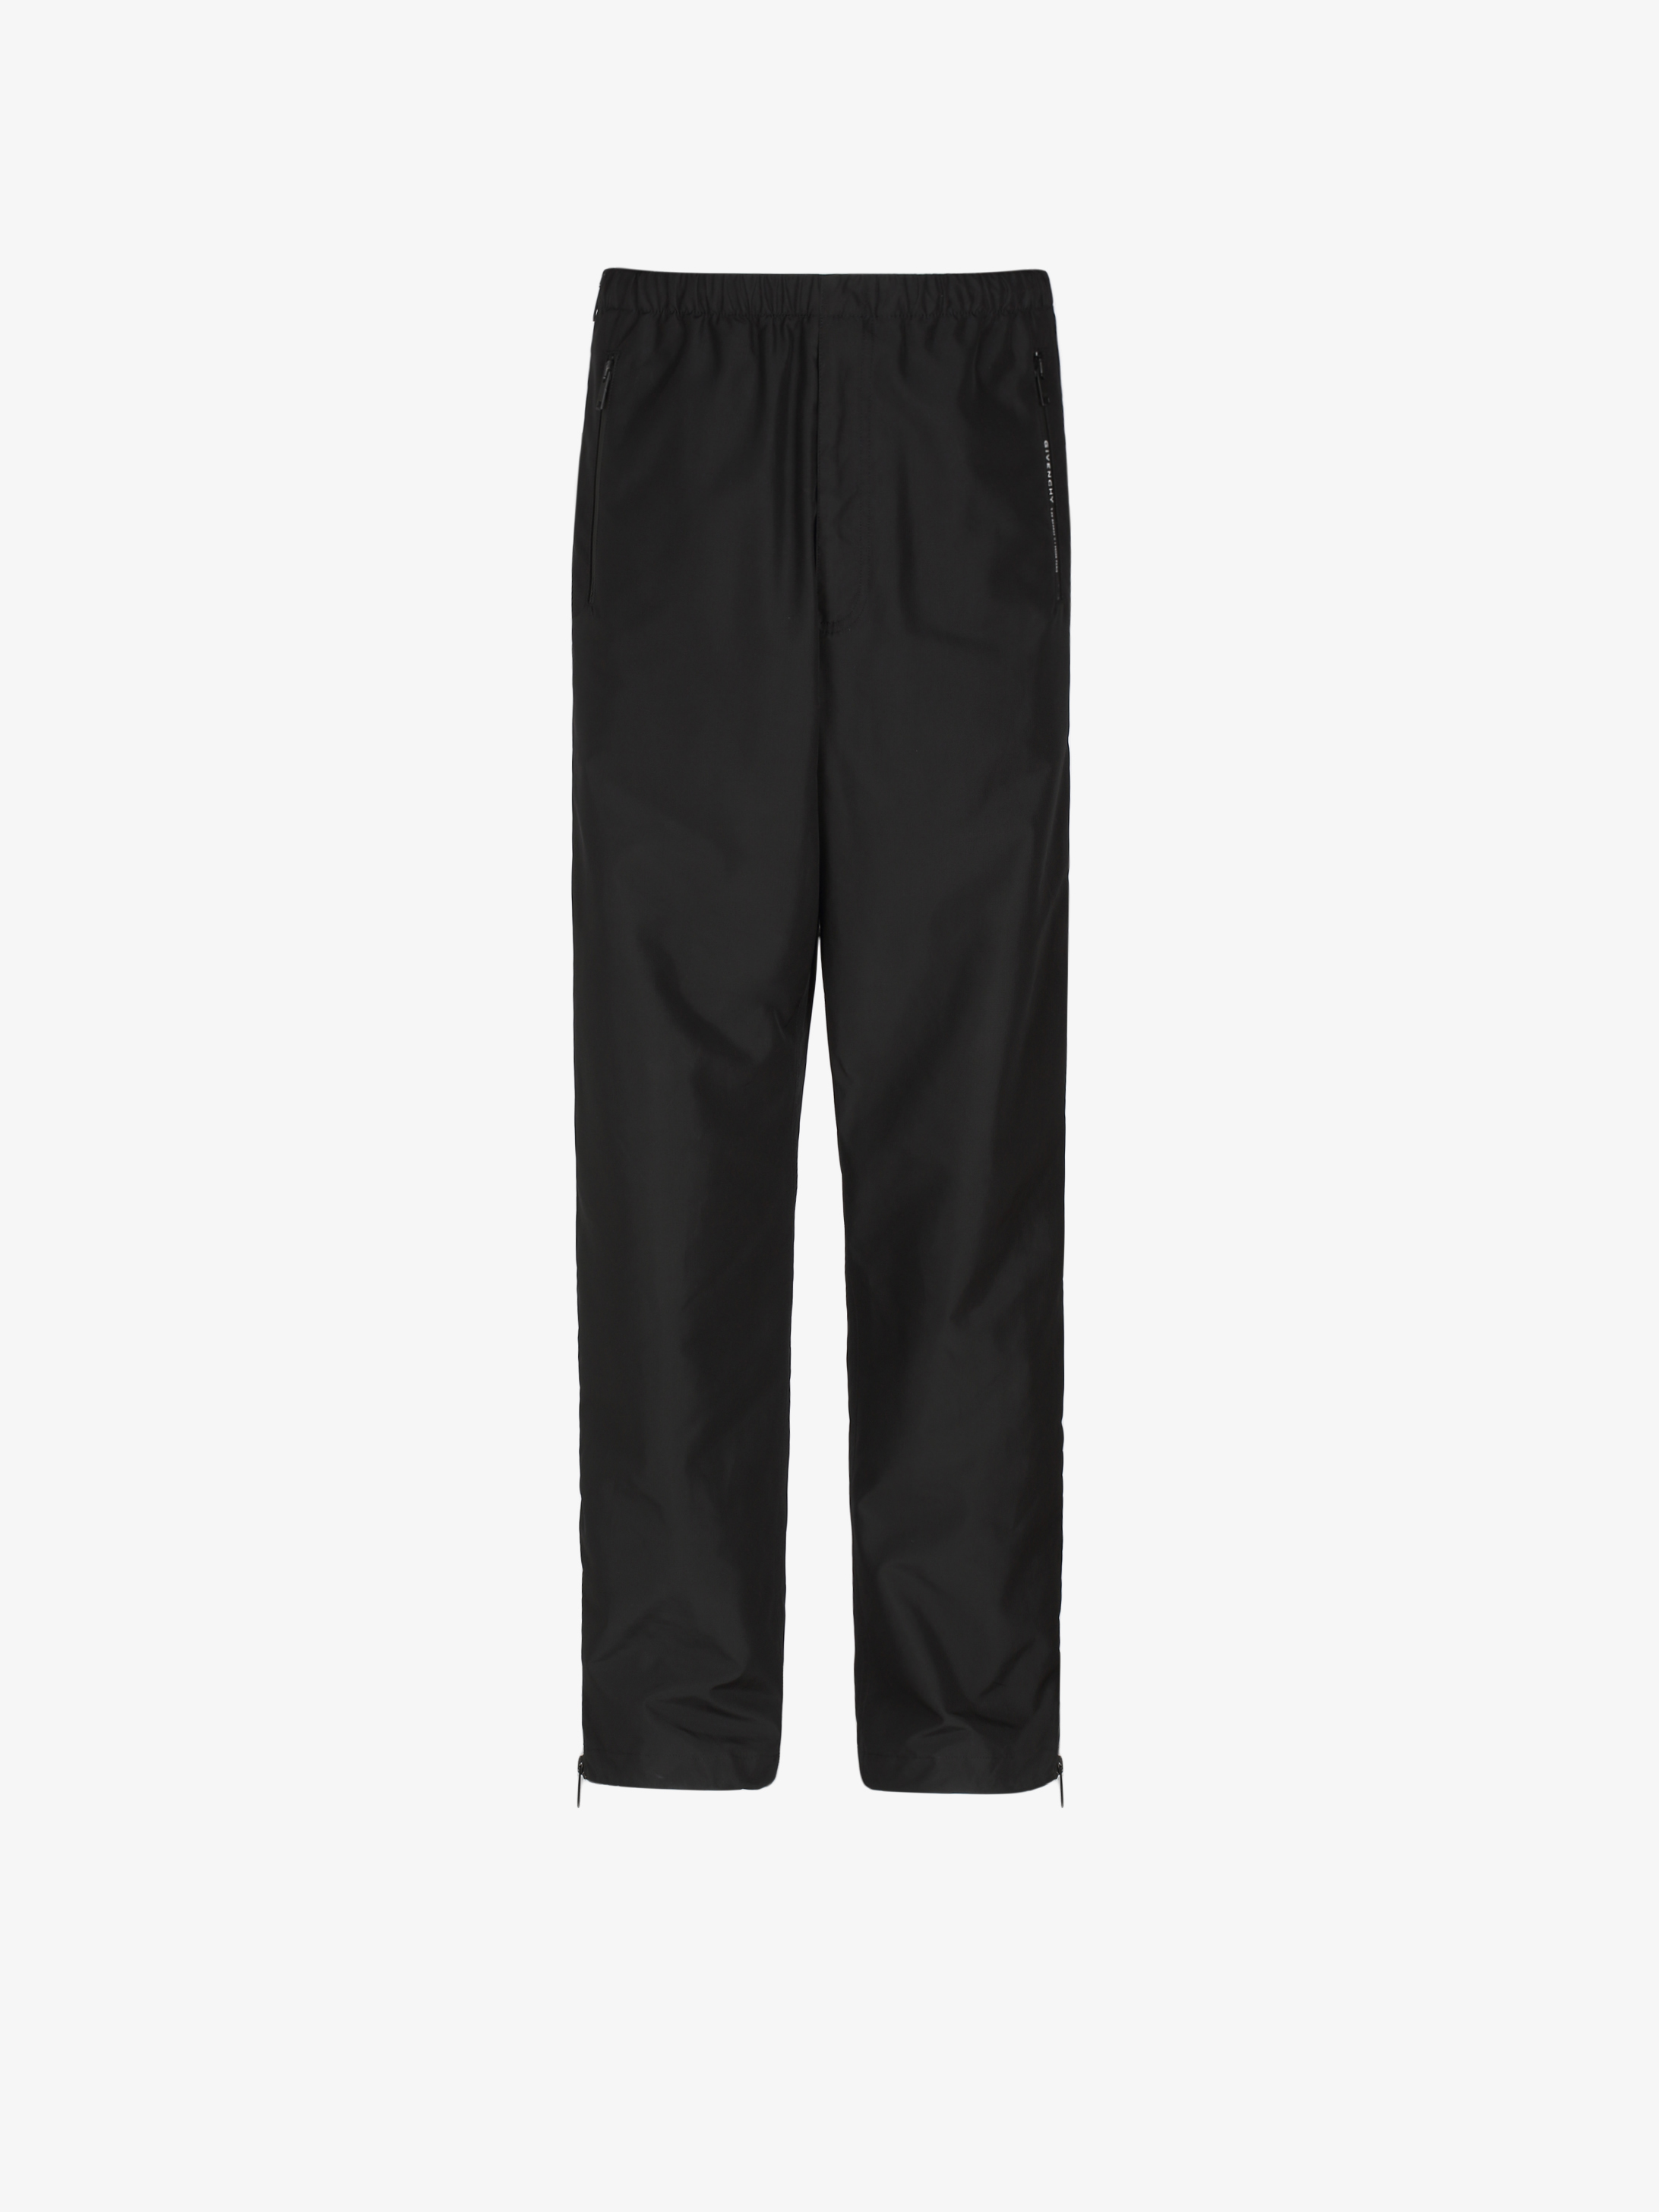 GIVENCHY ADDRESS jogger pants with zips